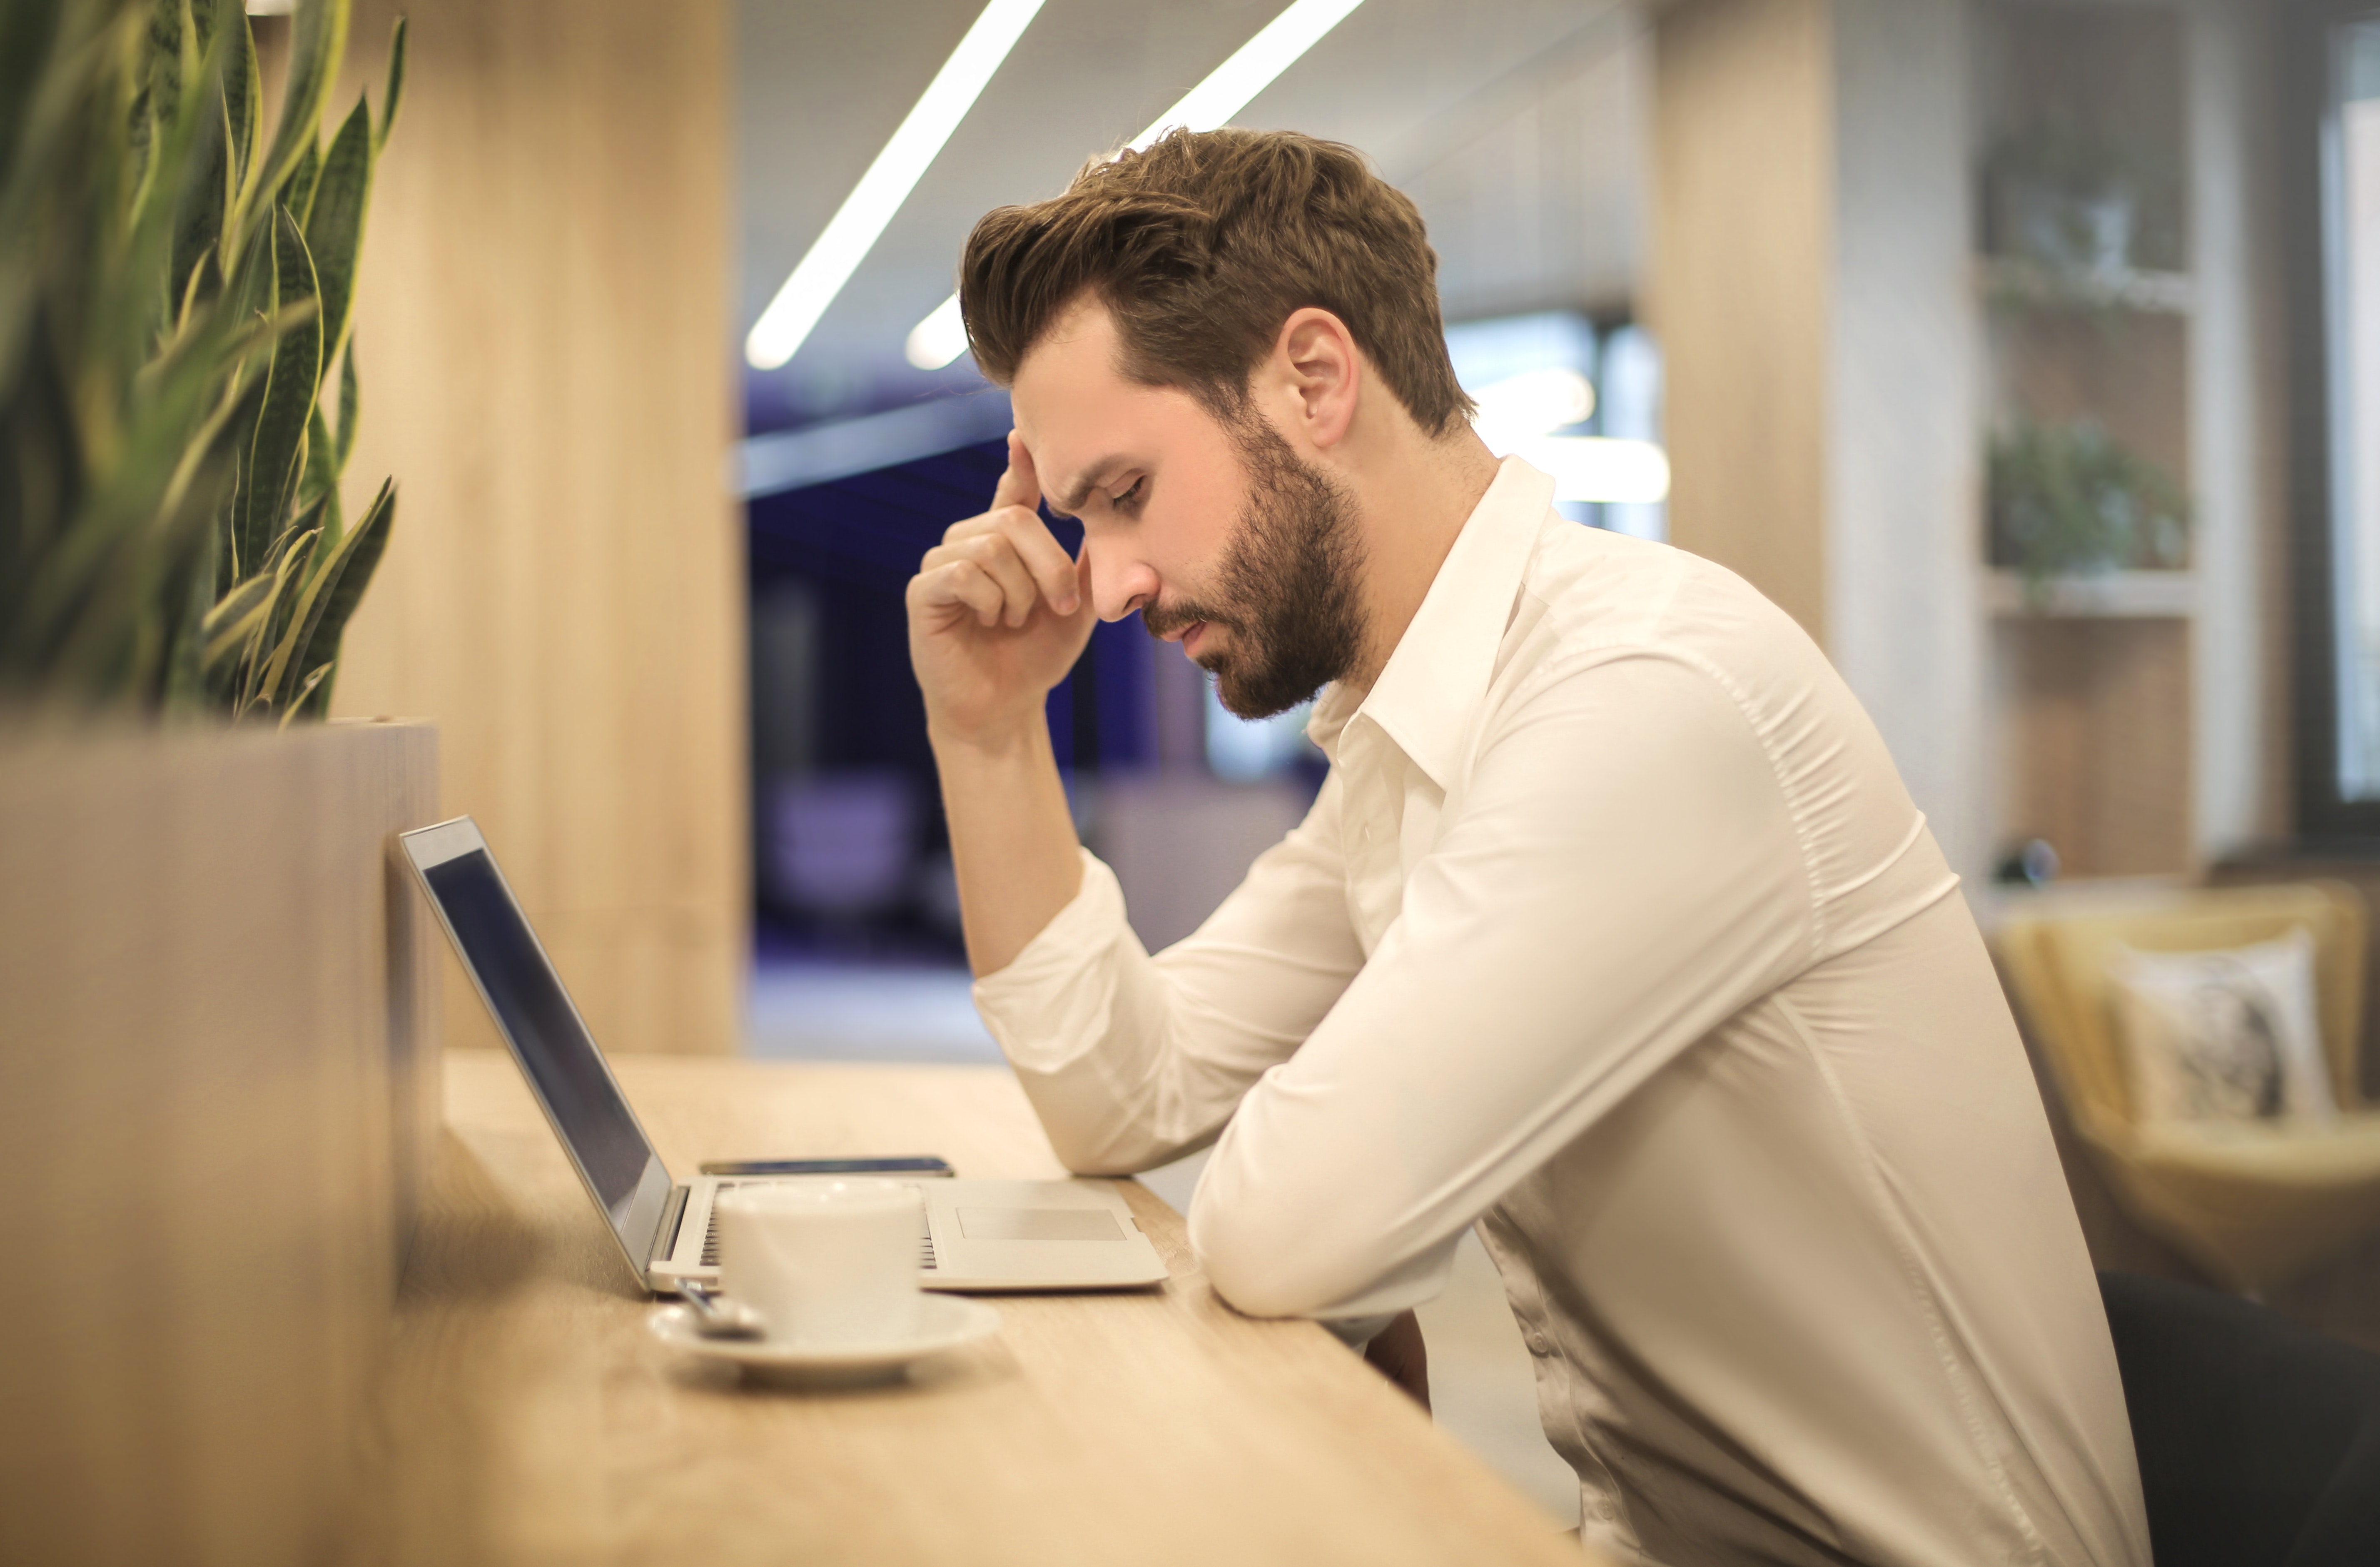 Man at computer holding his head and looking worried.